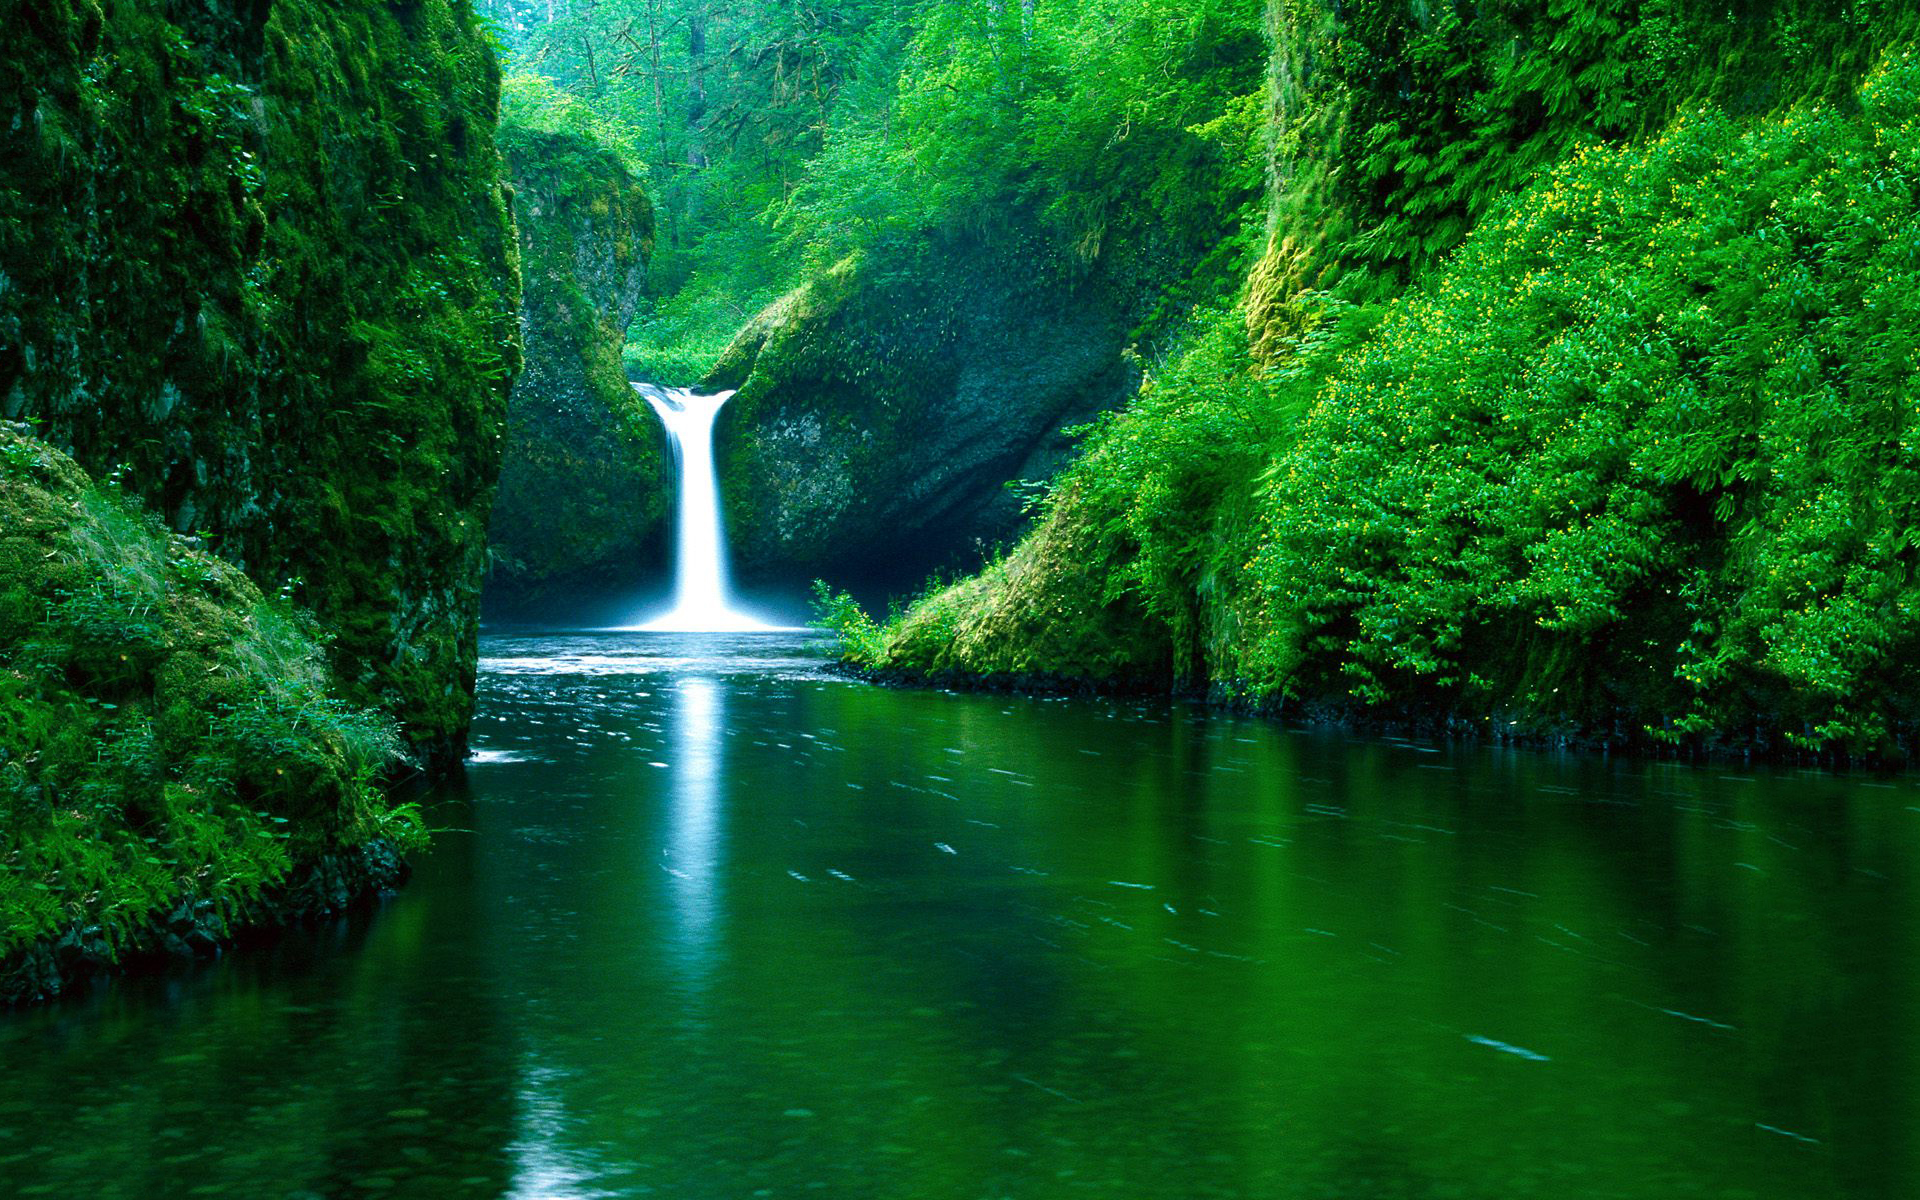 2792 waterfall hd wallpapers | background images - wallpaper abyss